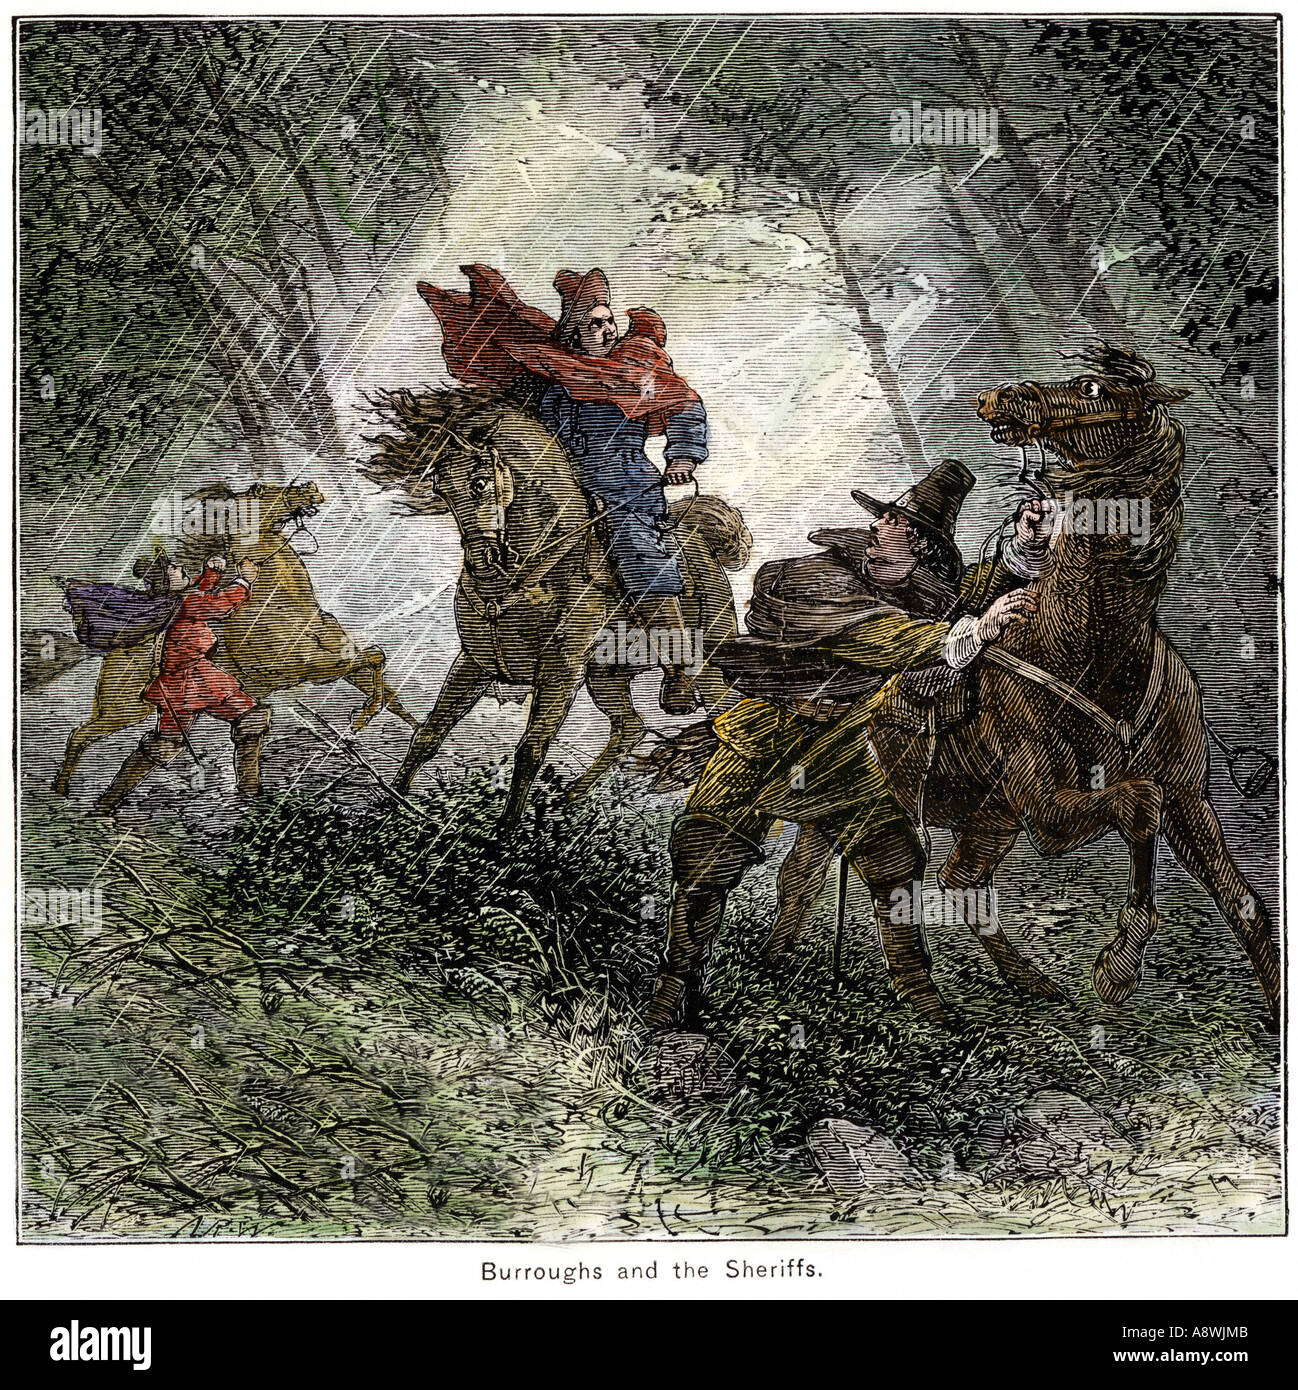 Stephen Burroughs pursued by the Salem sheriff during the witchcraft hysteria in Massachusetts Bay Colony 1690s. Hand-colored woodcut - Stock Image